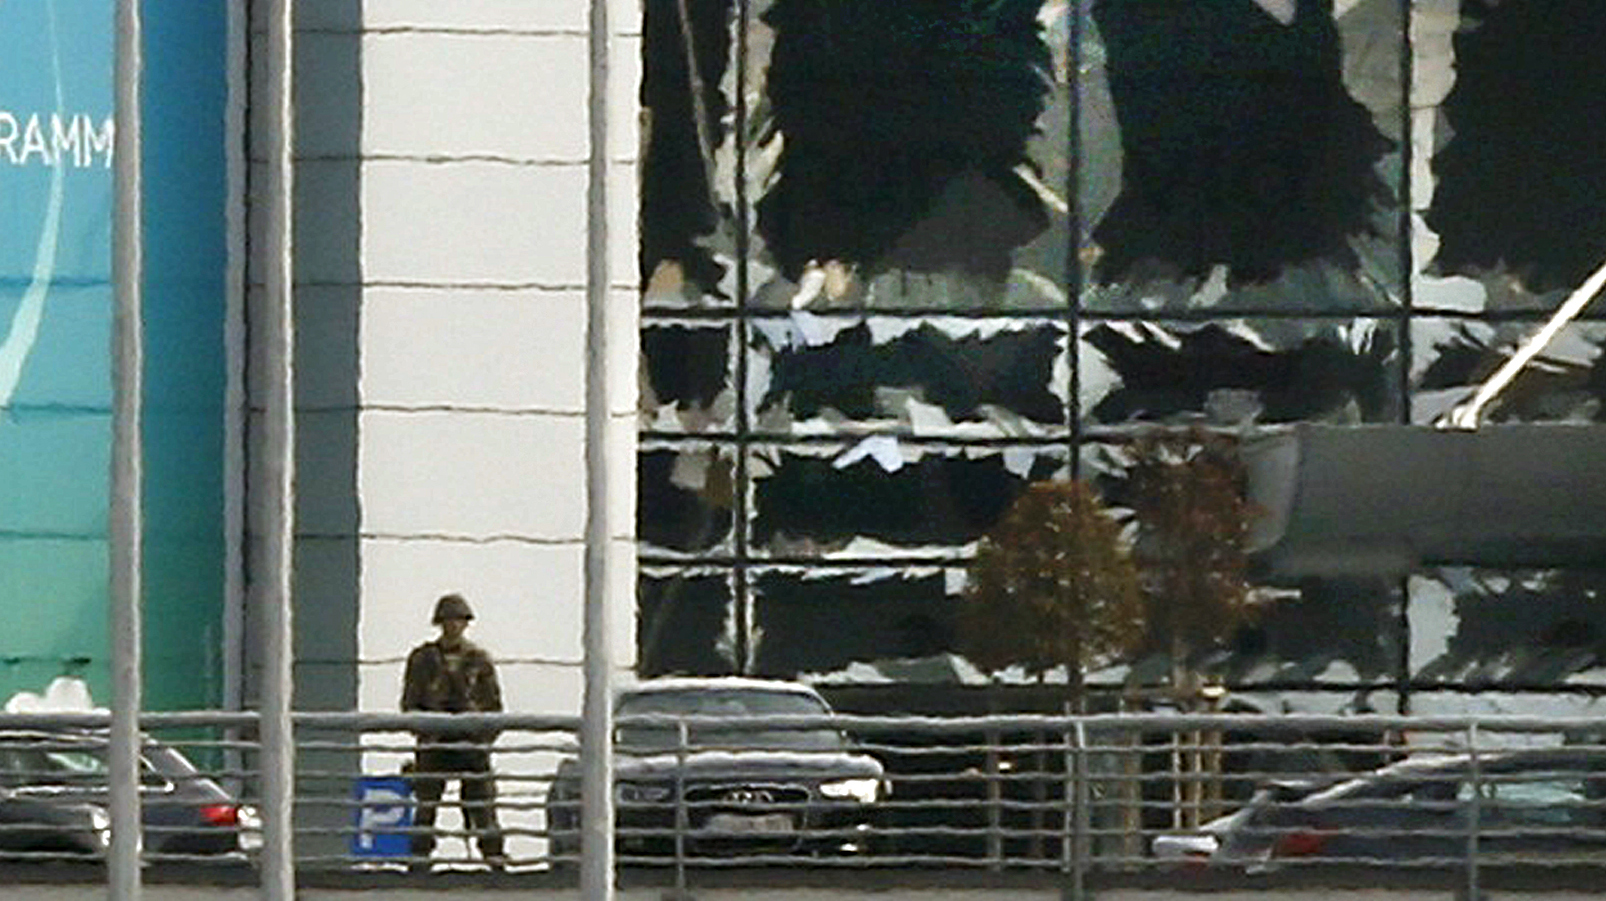 A soldier stands near broken windows after explosions at Zaventem airport near Brussels, Belgium